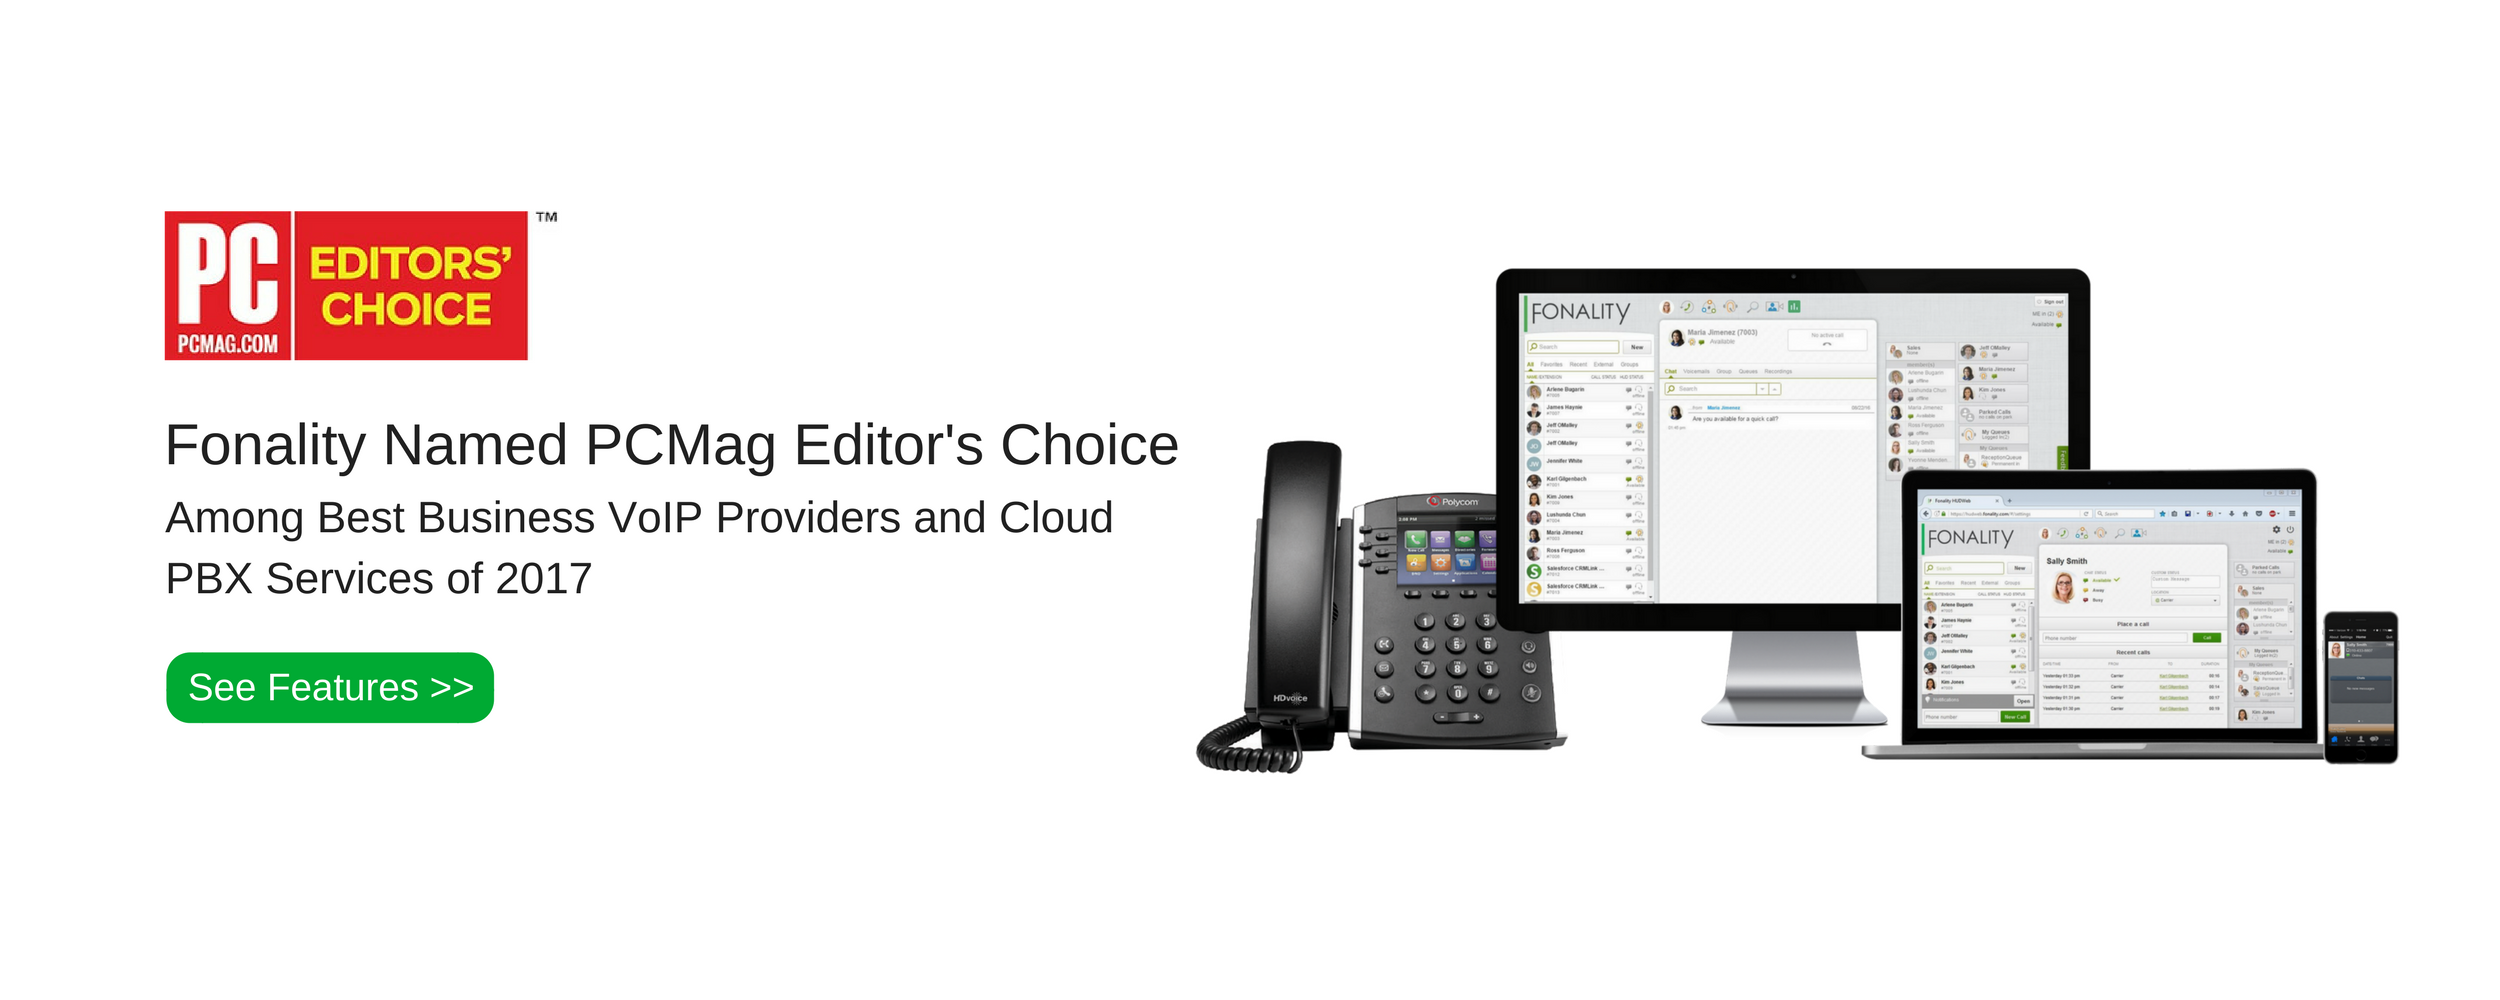 Fonality Named PCMag Editor's Choice Among Best Business VoIP Providers and Cloud PBX Services of 2017